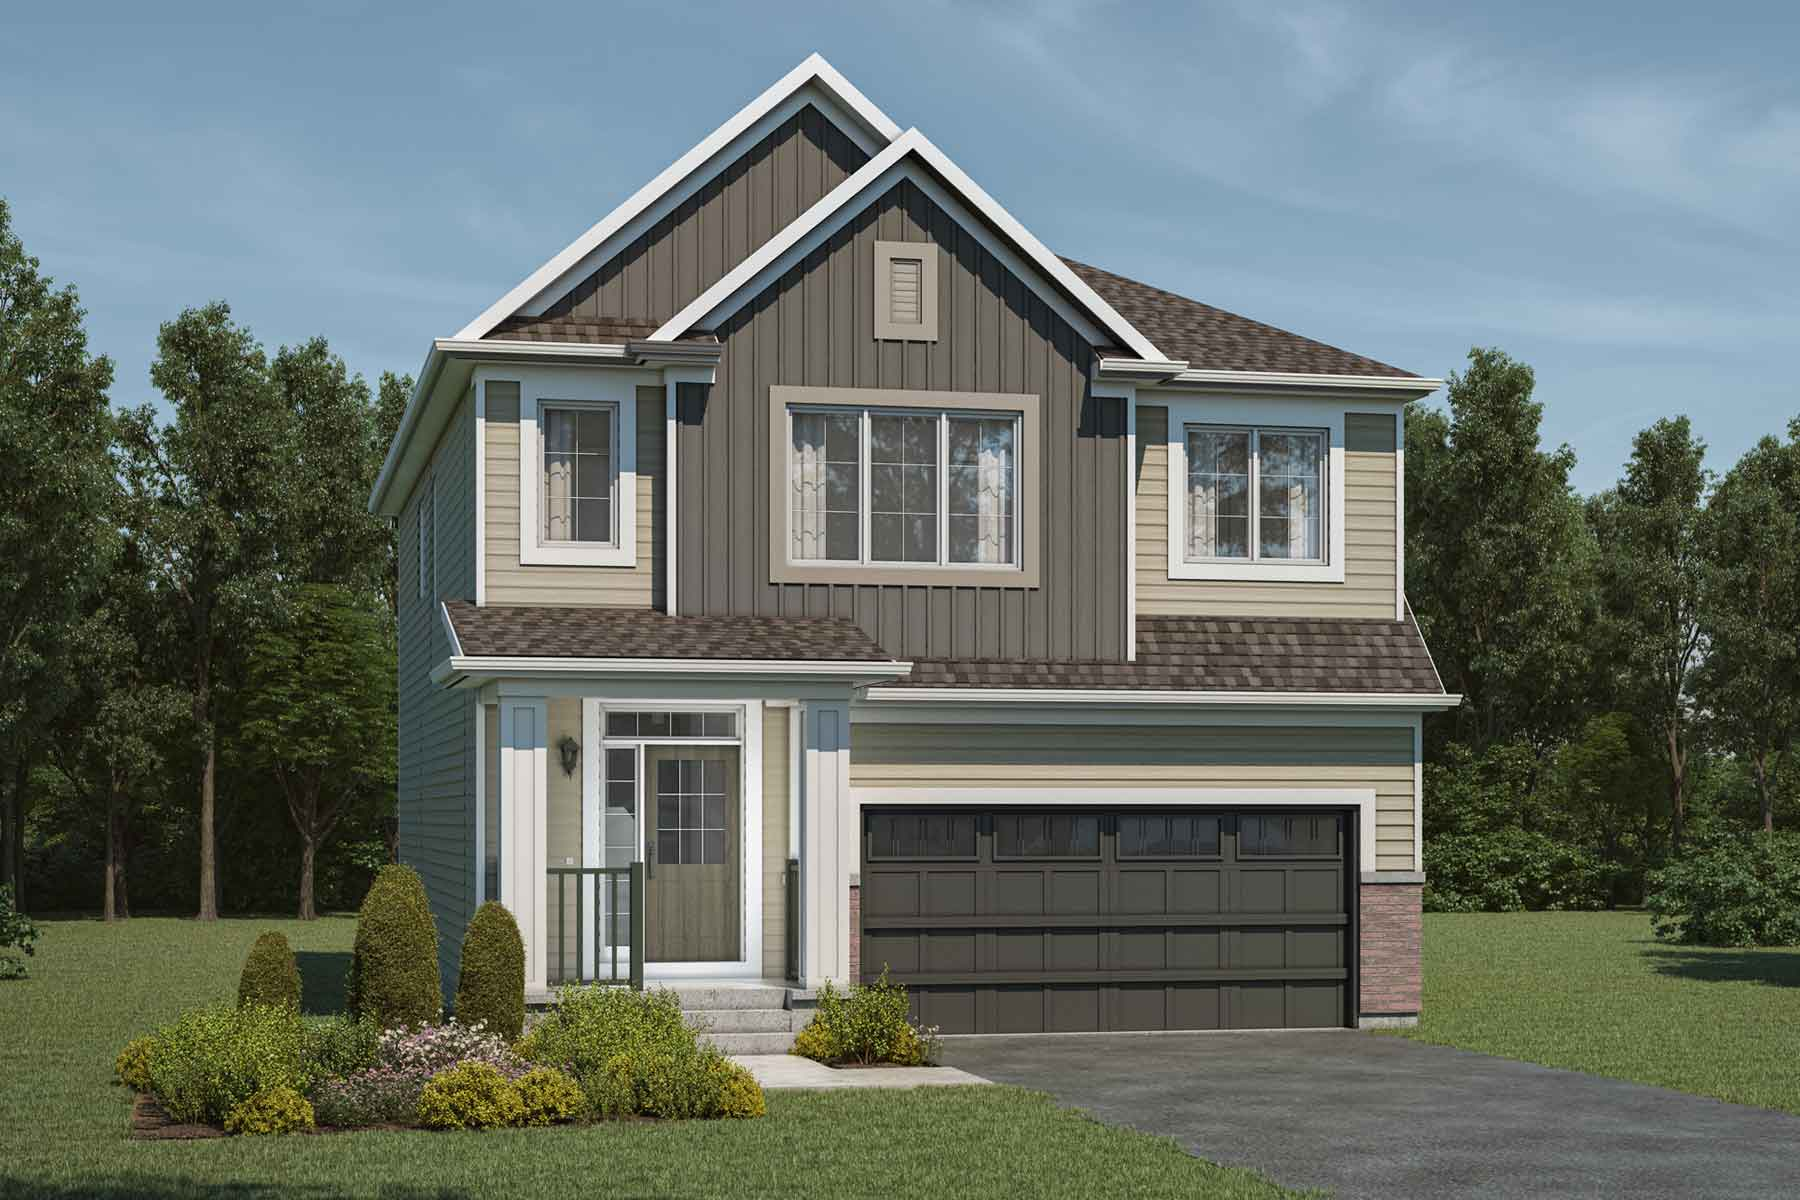 Whistler Plan colonial_cityscape_whistler at Cityscape in Calgary Alberta by Mattamy Homes